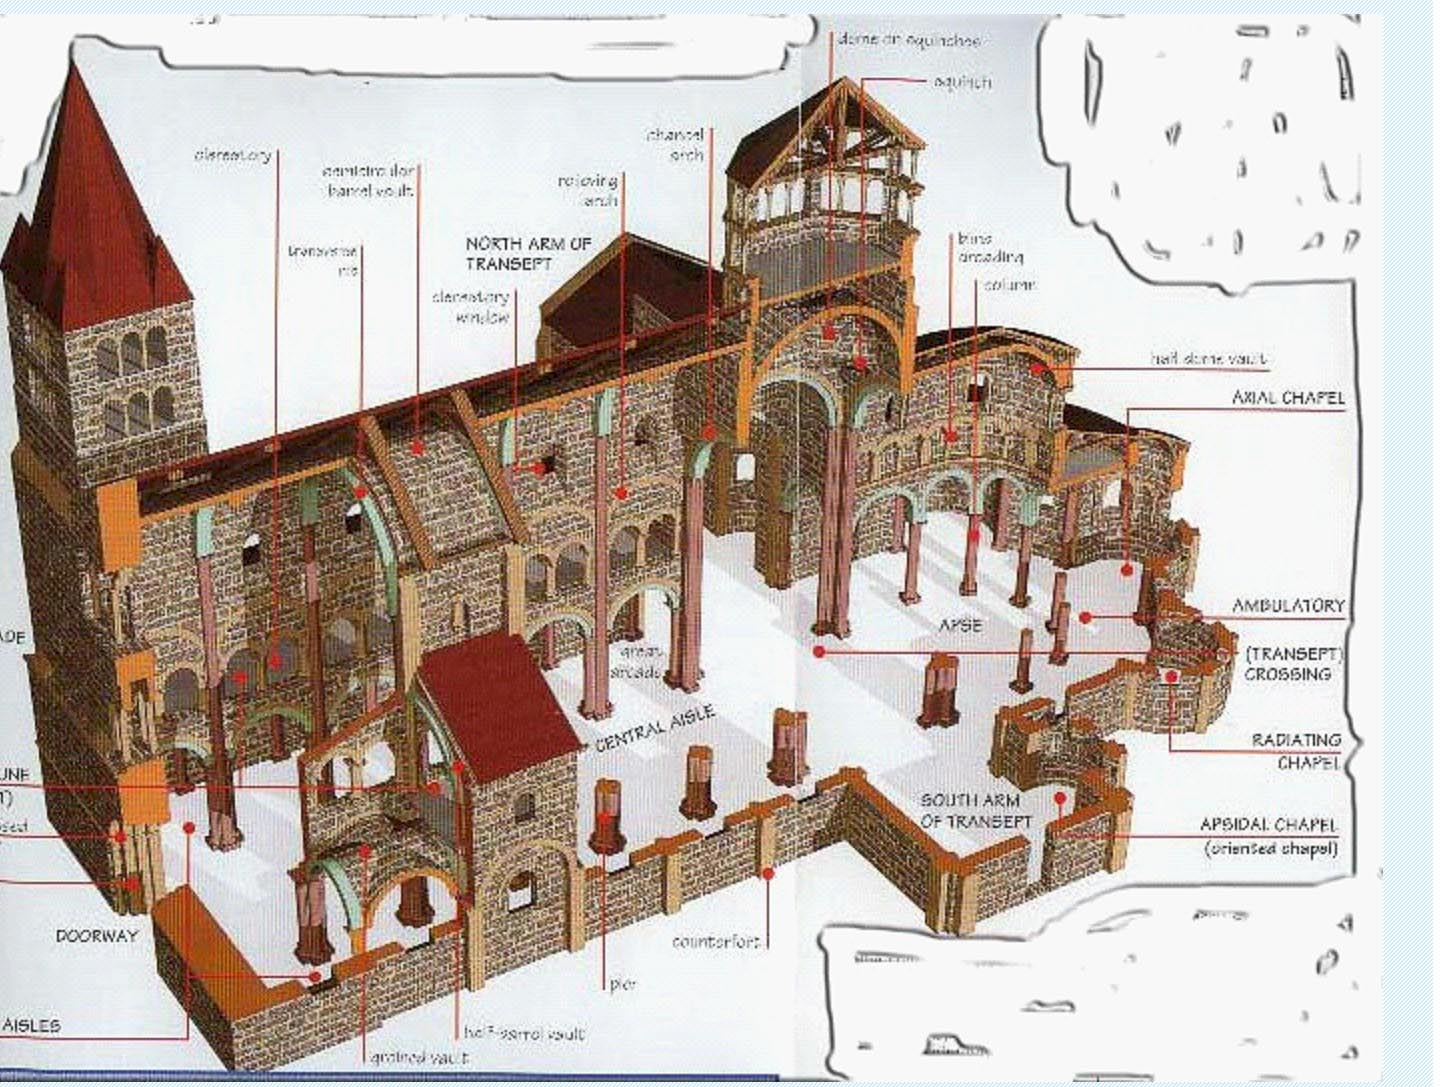 Romanesque Architecture 1000-1200 Diagram